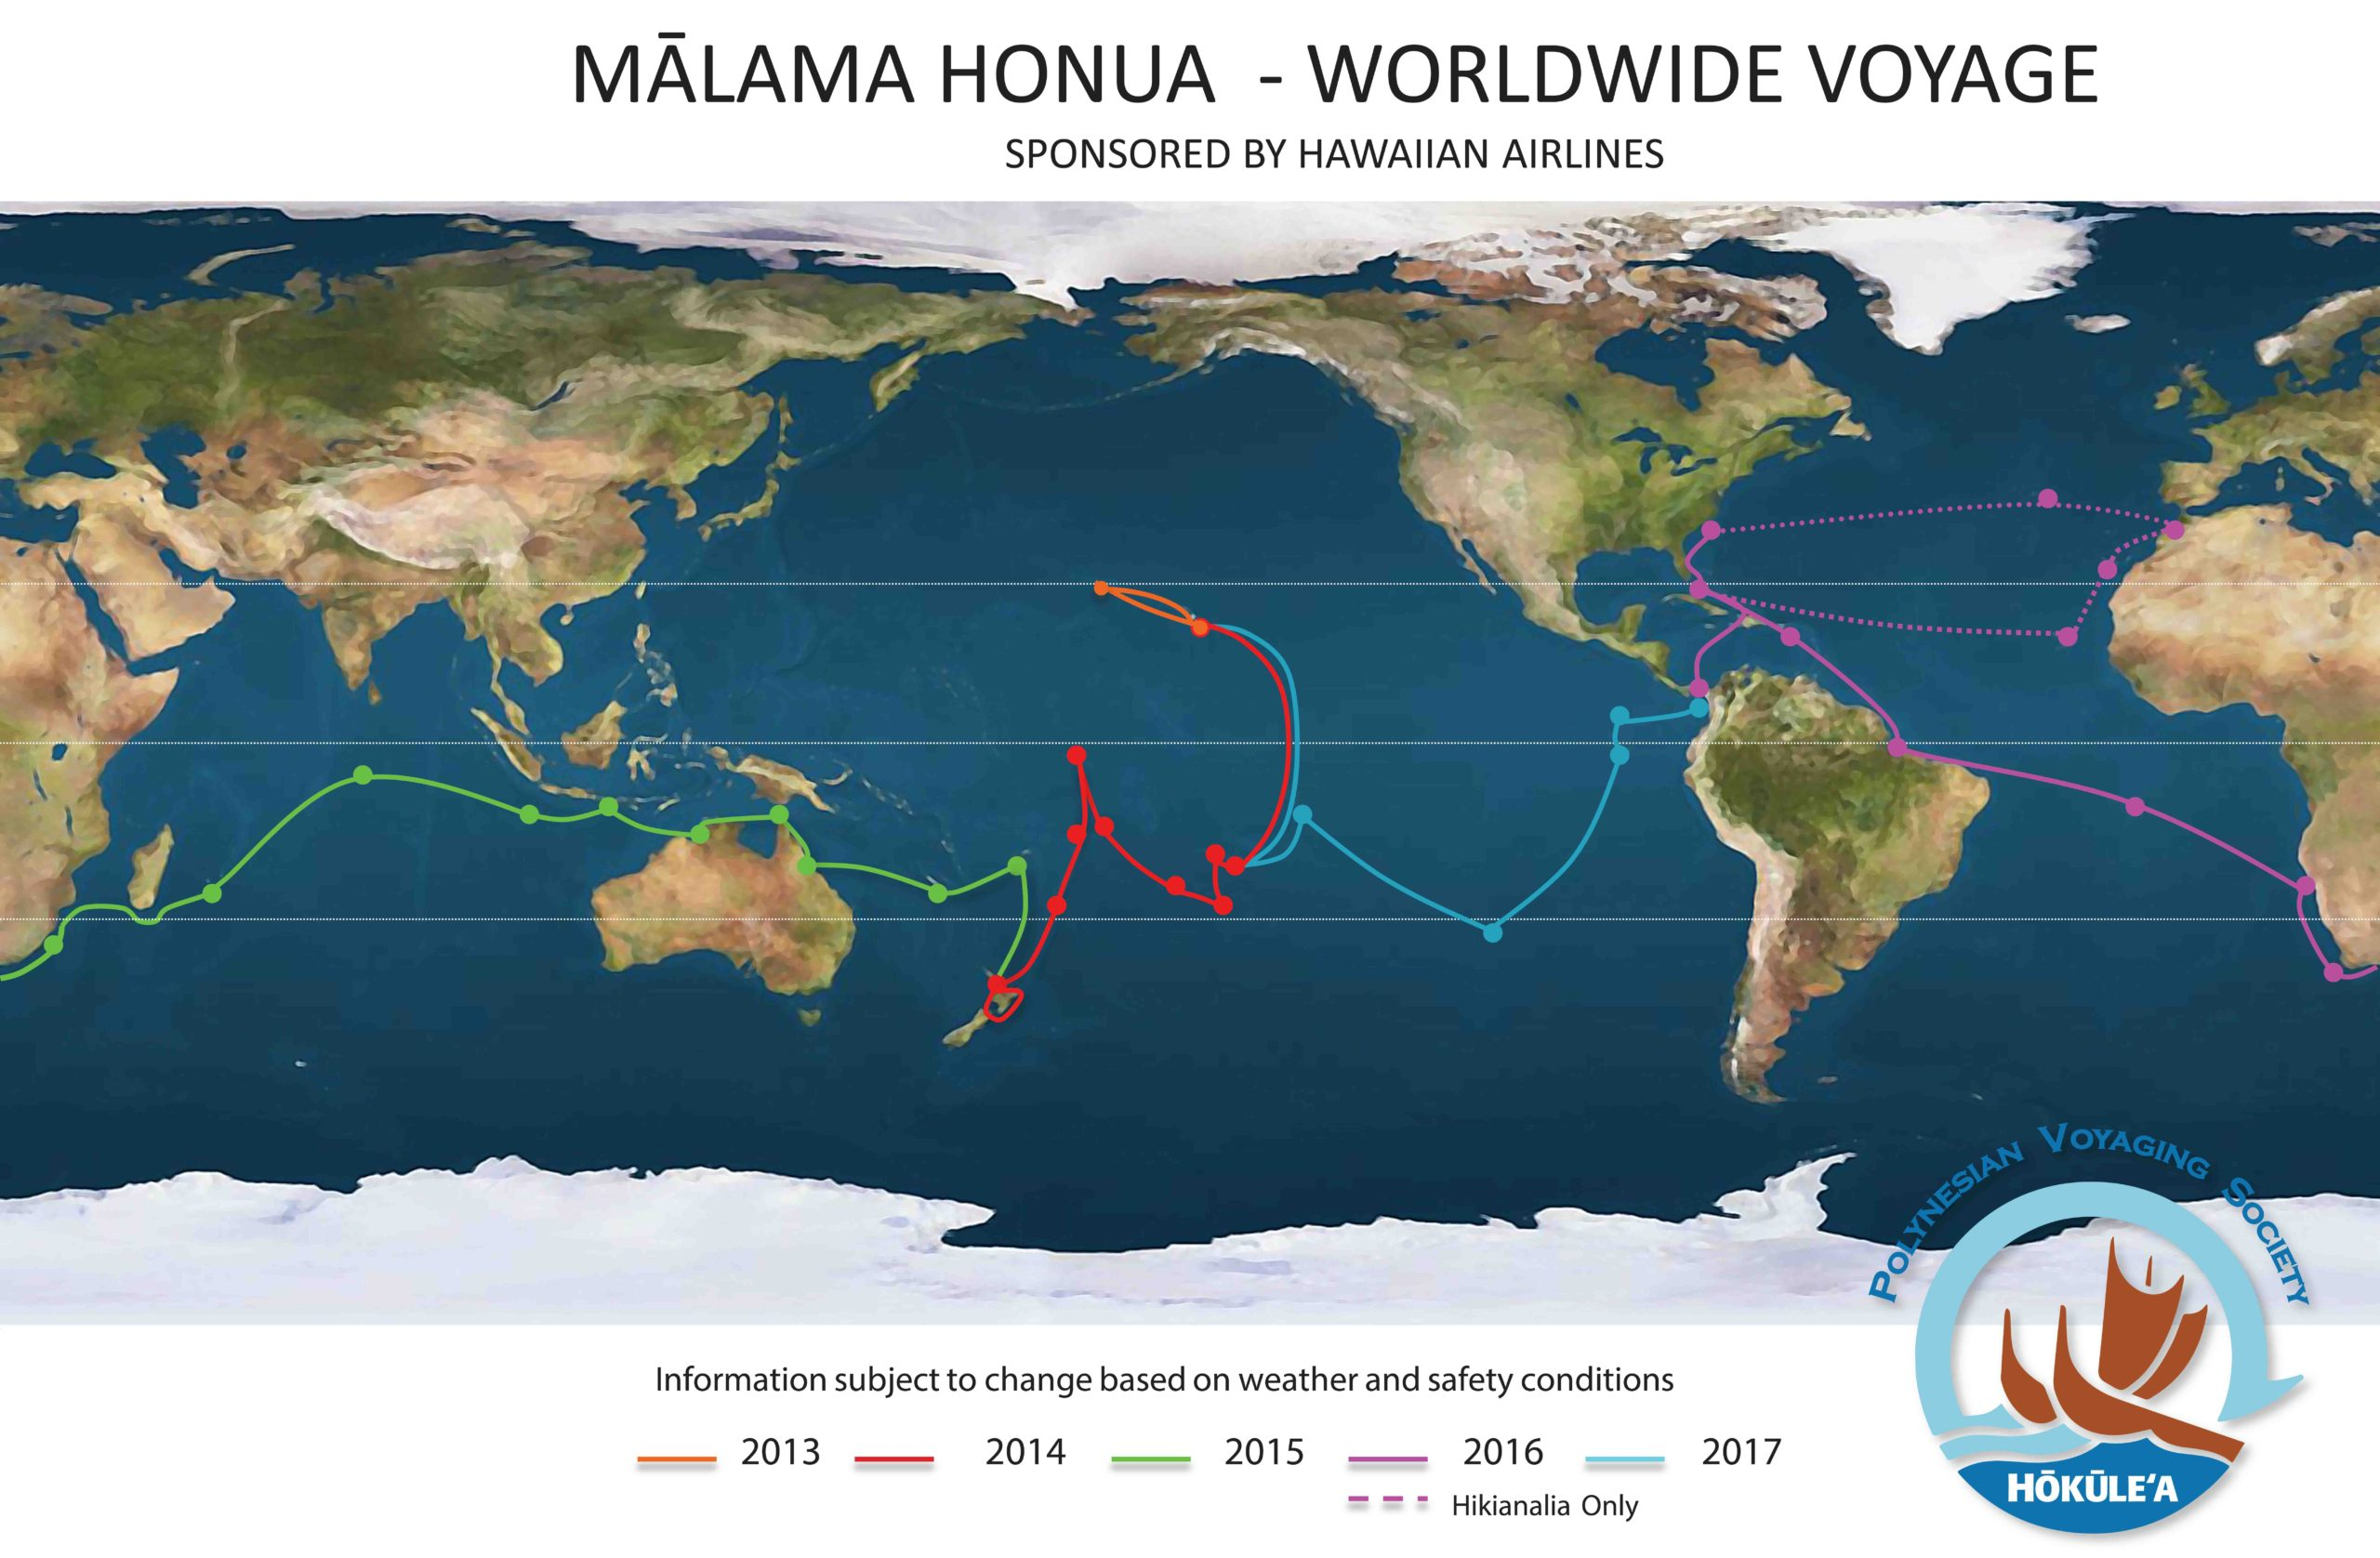 Hōkūleʻa and Hikianala: The Adventure Begins